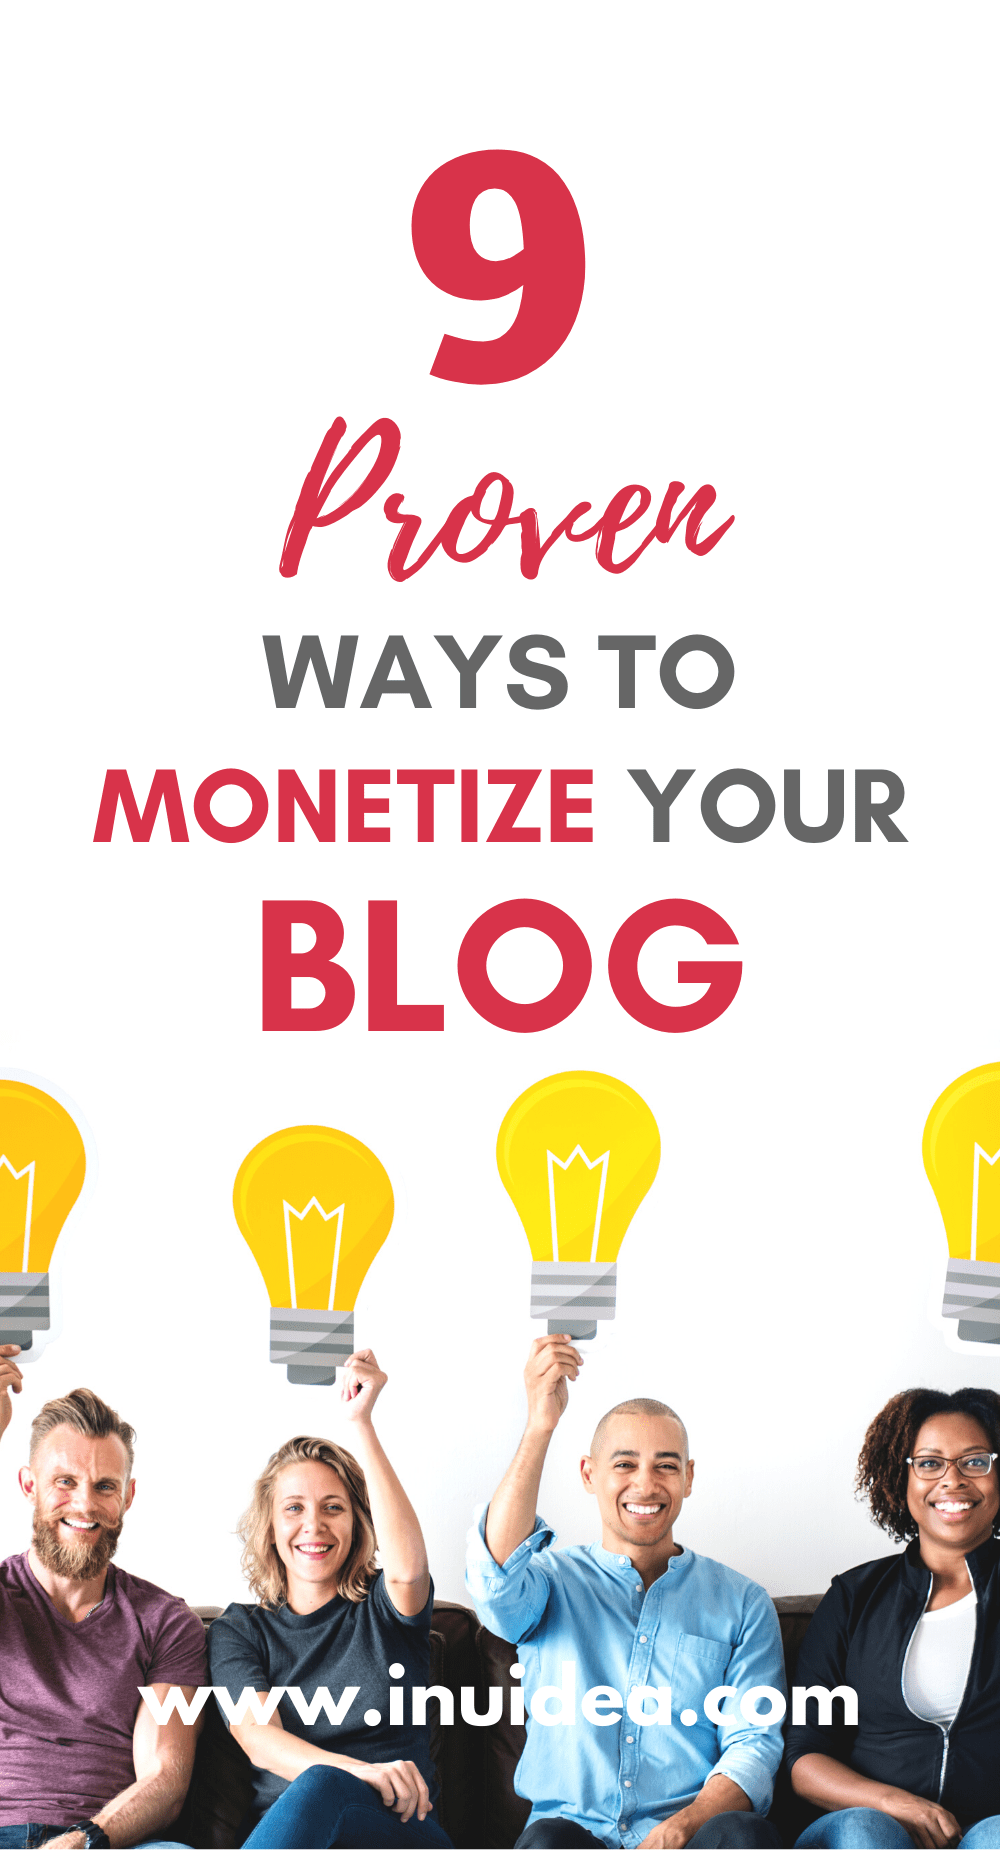 9 Proven Ways to Monetize Your Blog - Make Money Blogging in 2020